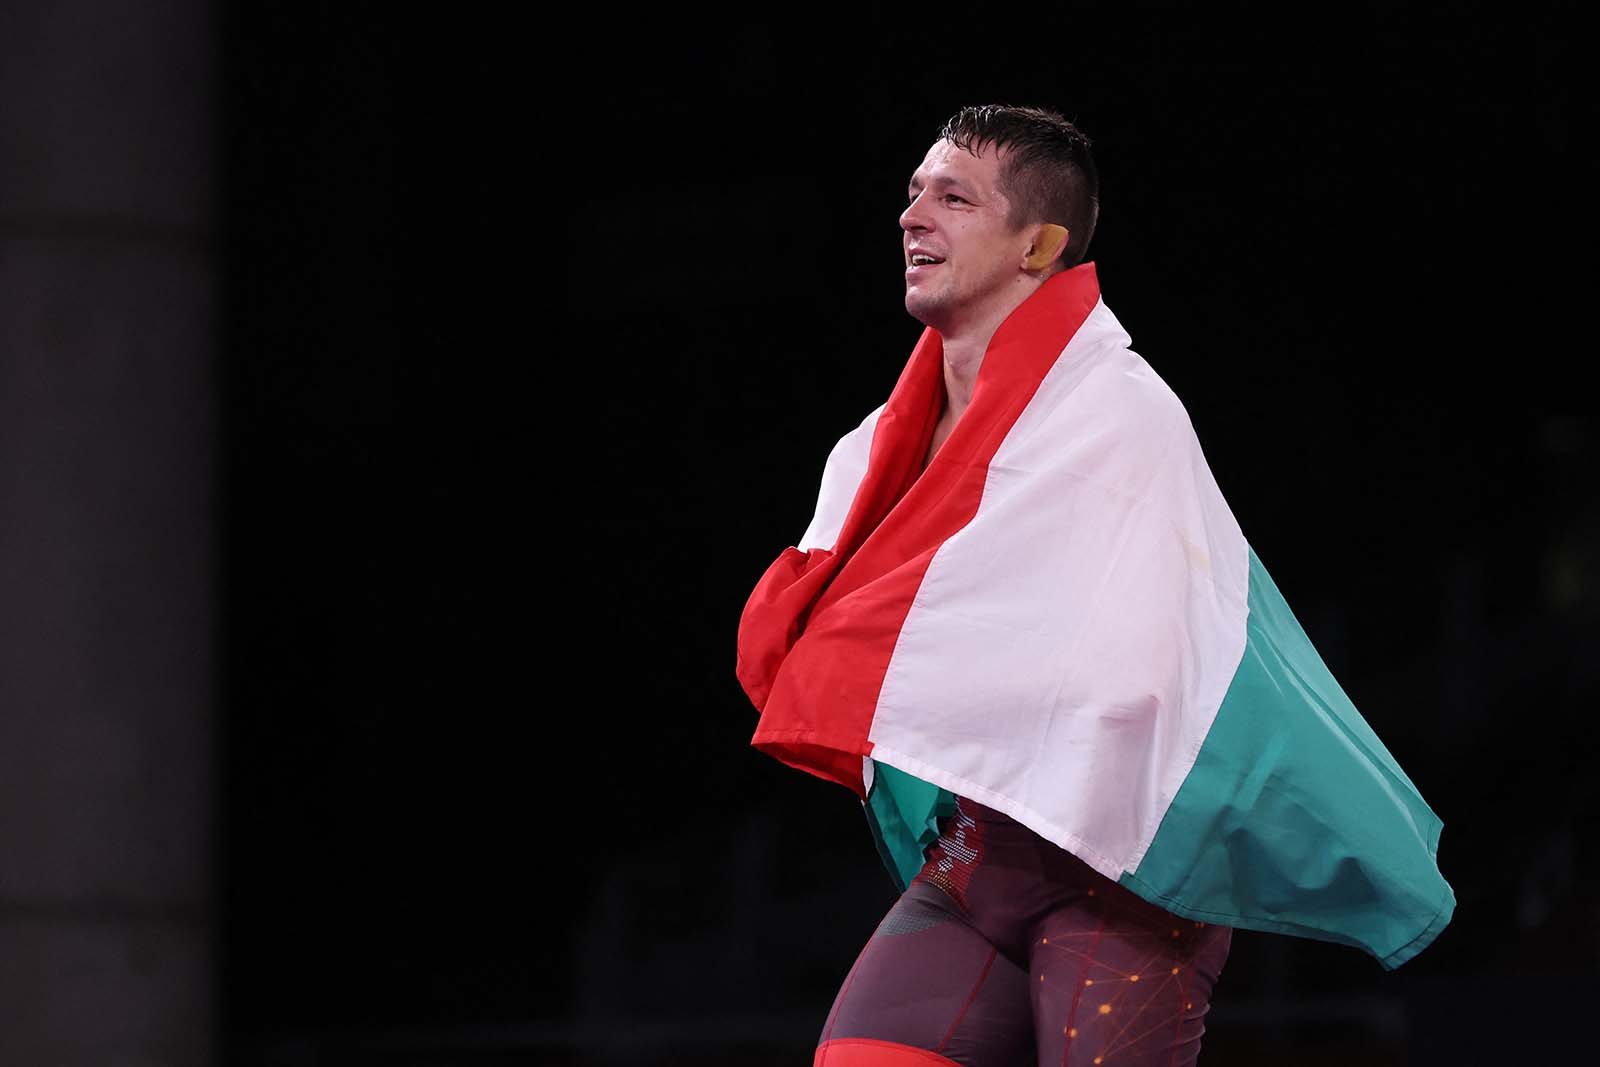 Hungary's Tamas Lorincz celebrates his gold medal victory against Kyrgyzstan's Akzhol Makhmudov in the men's Greco-Roman 77kg wrestling final match on August 3.